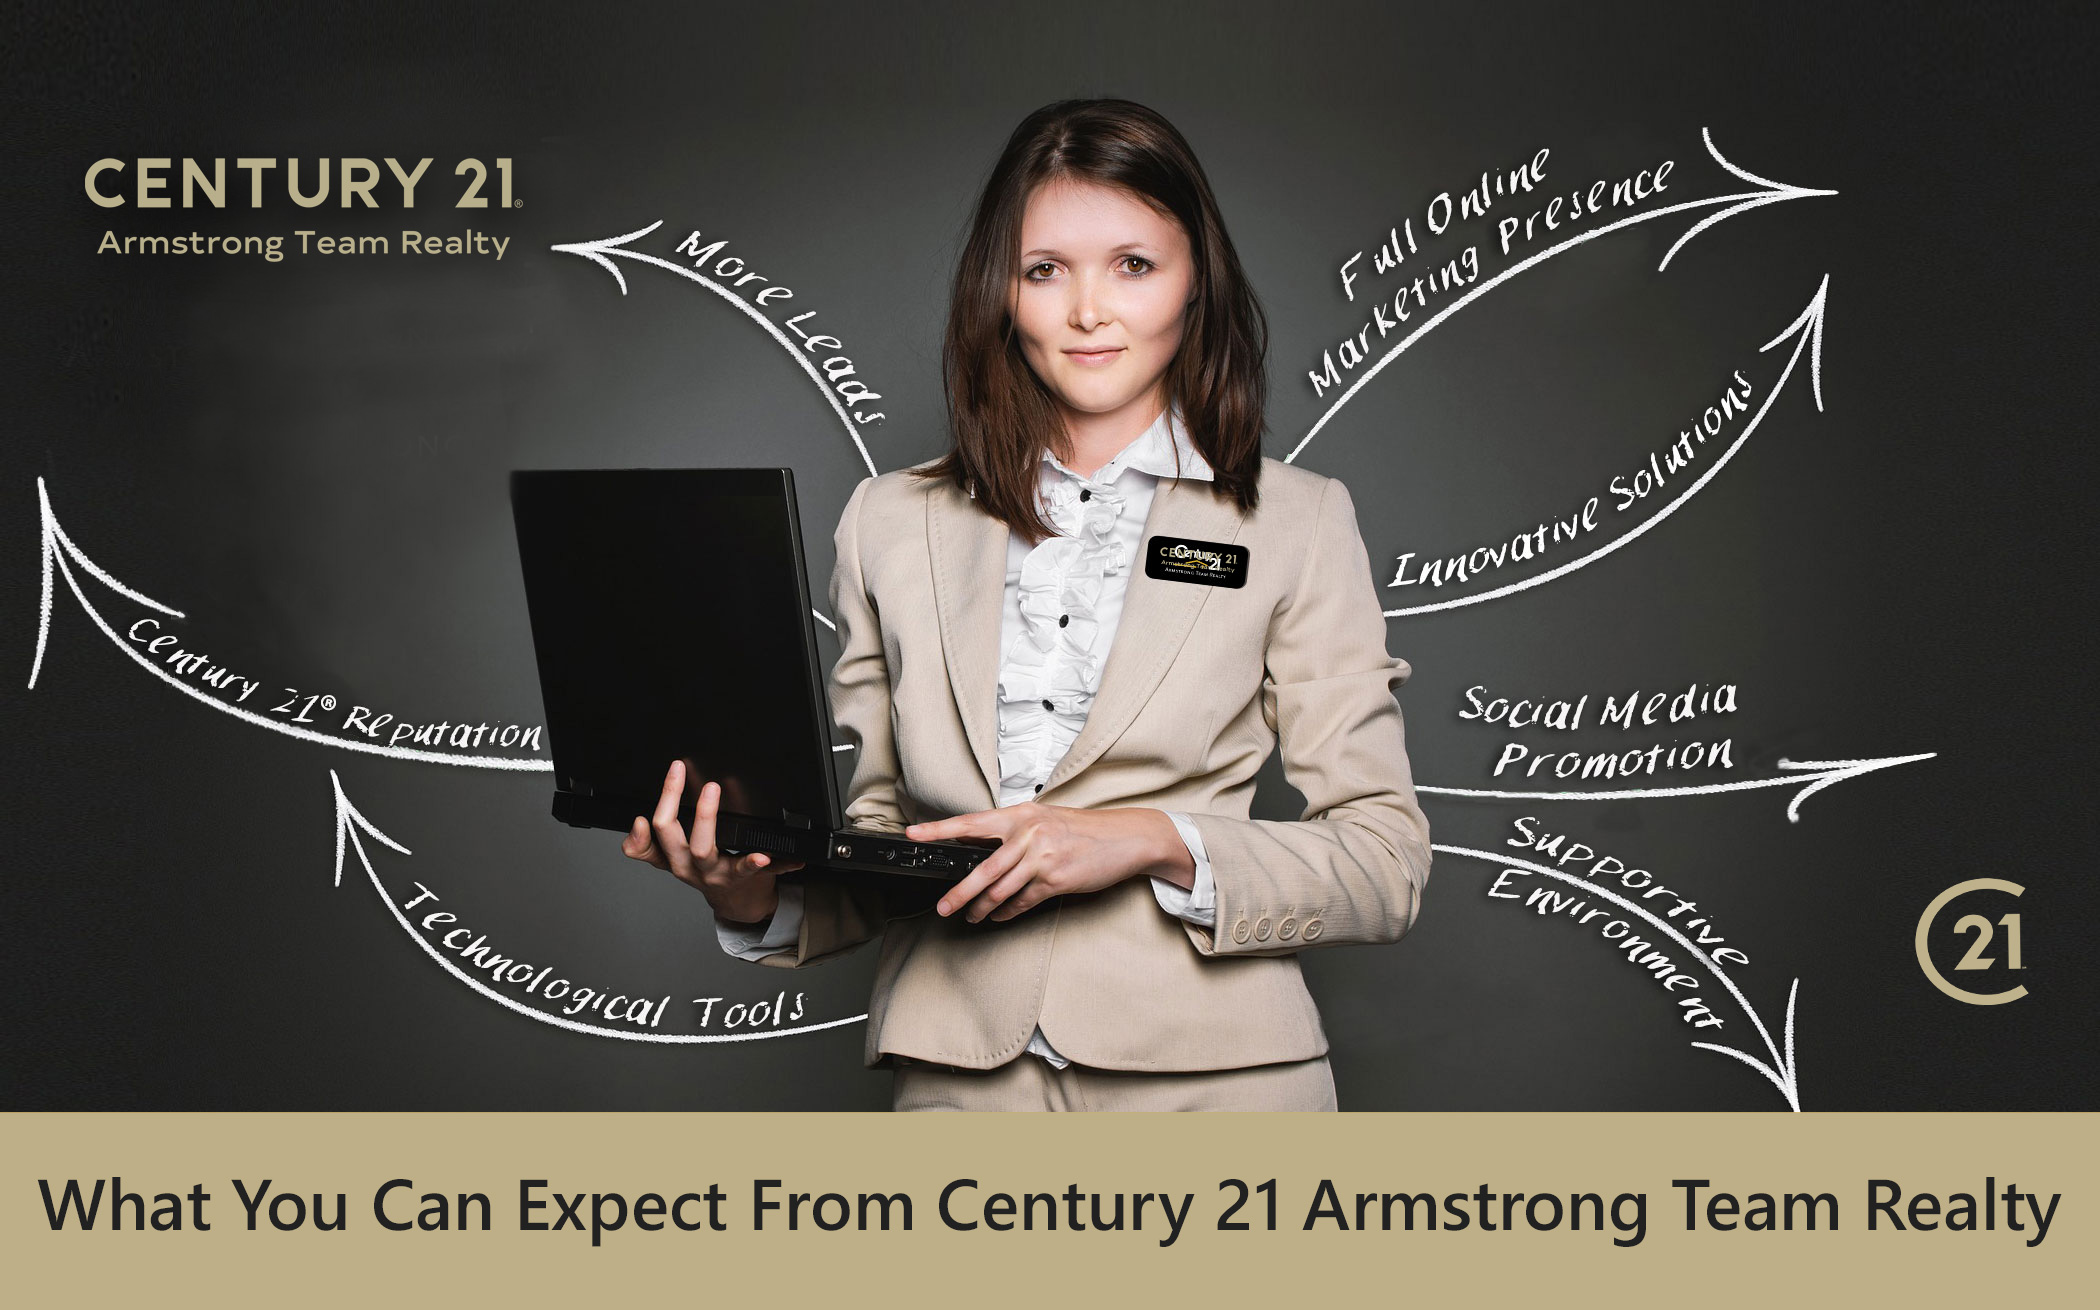 Join The Century 21 Armstrong Team